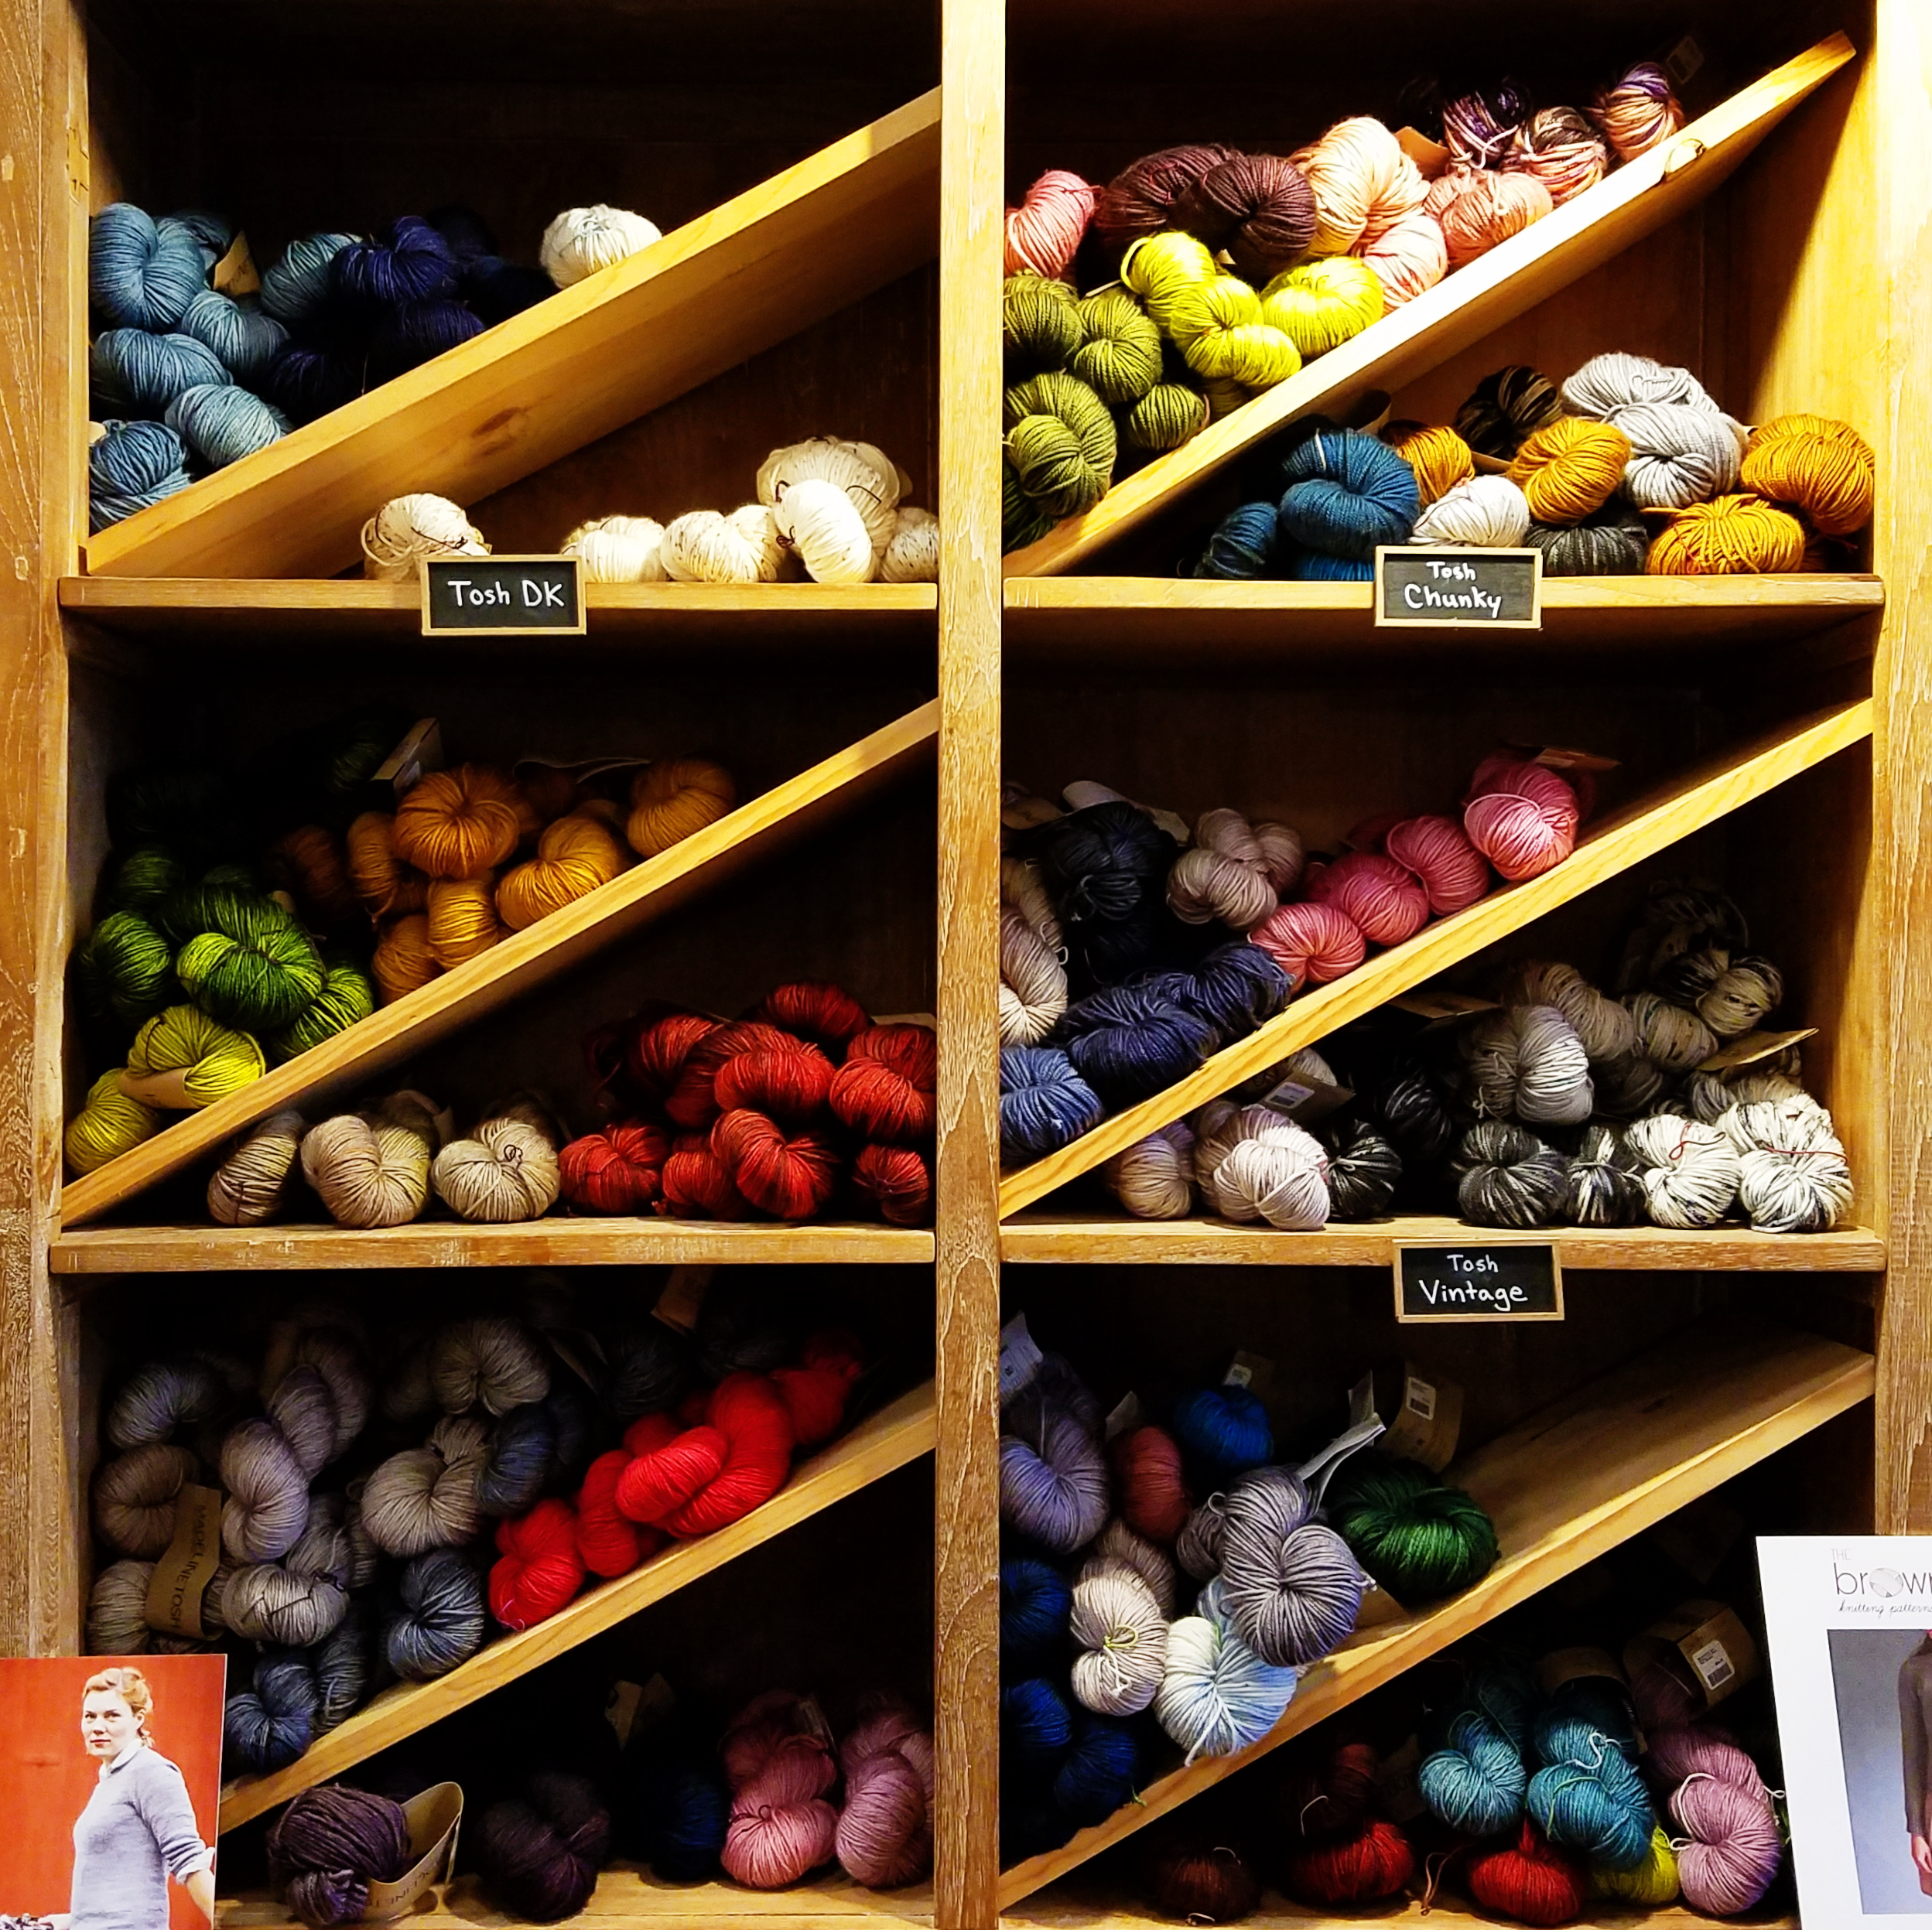 Stocking up on yarn for last minute Christmas projects